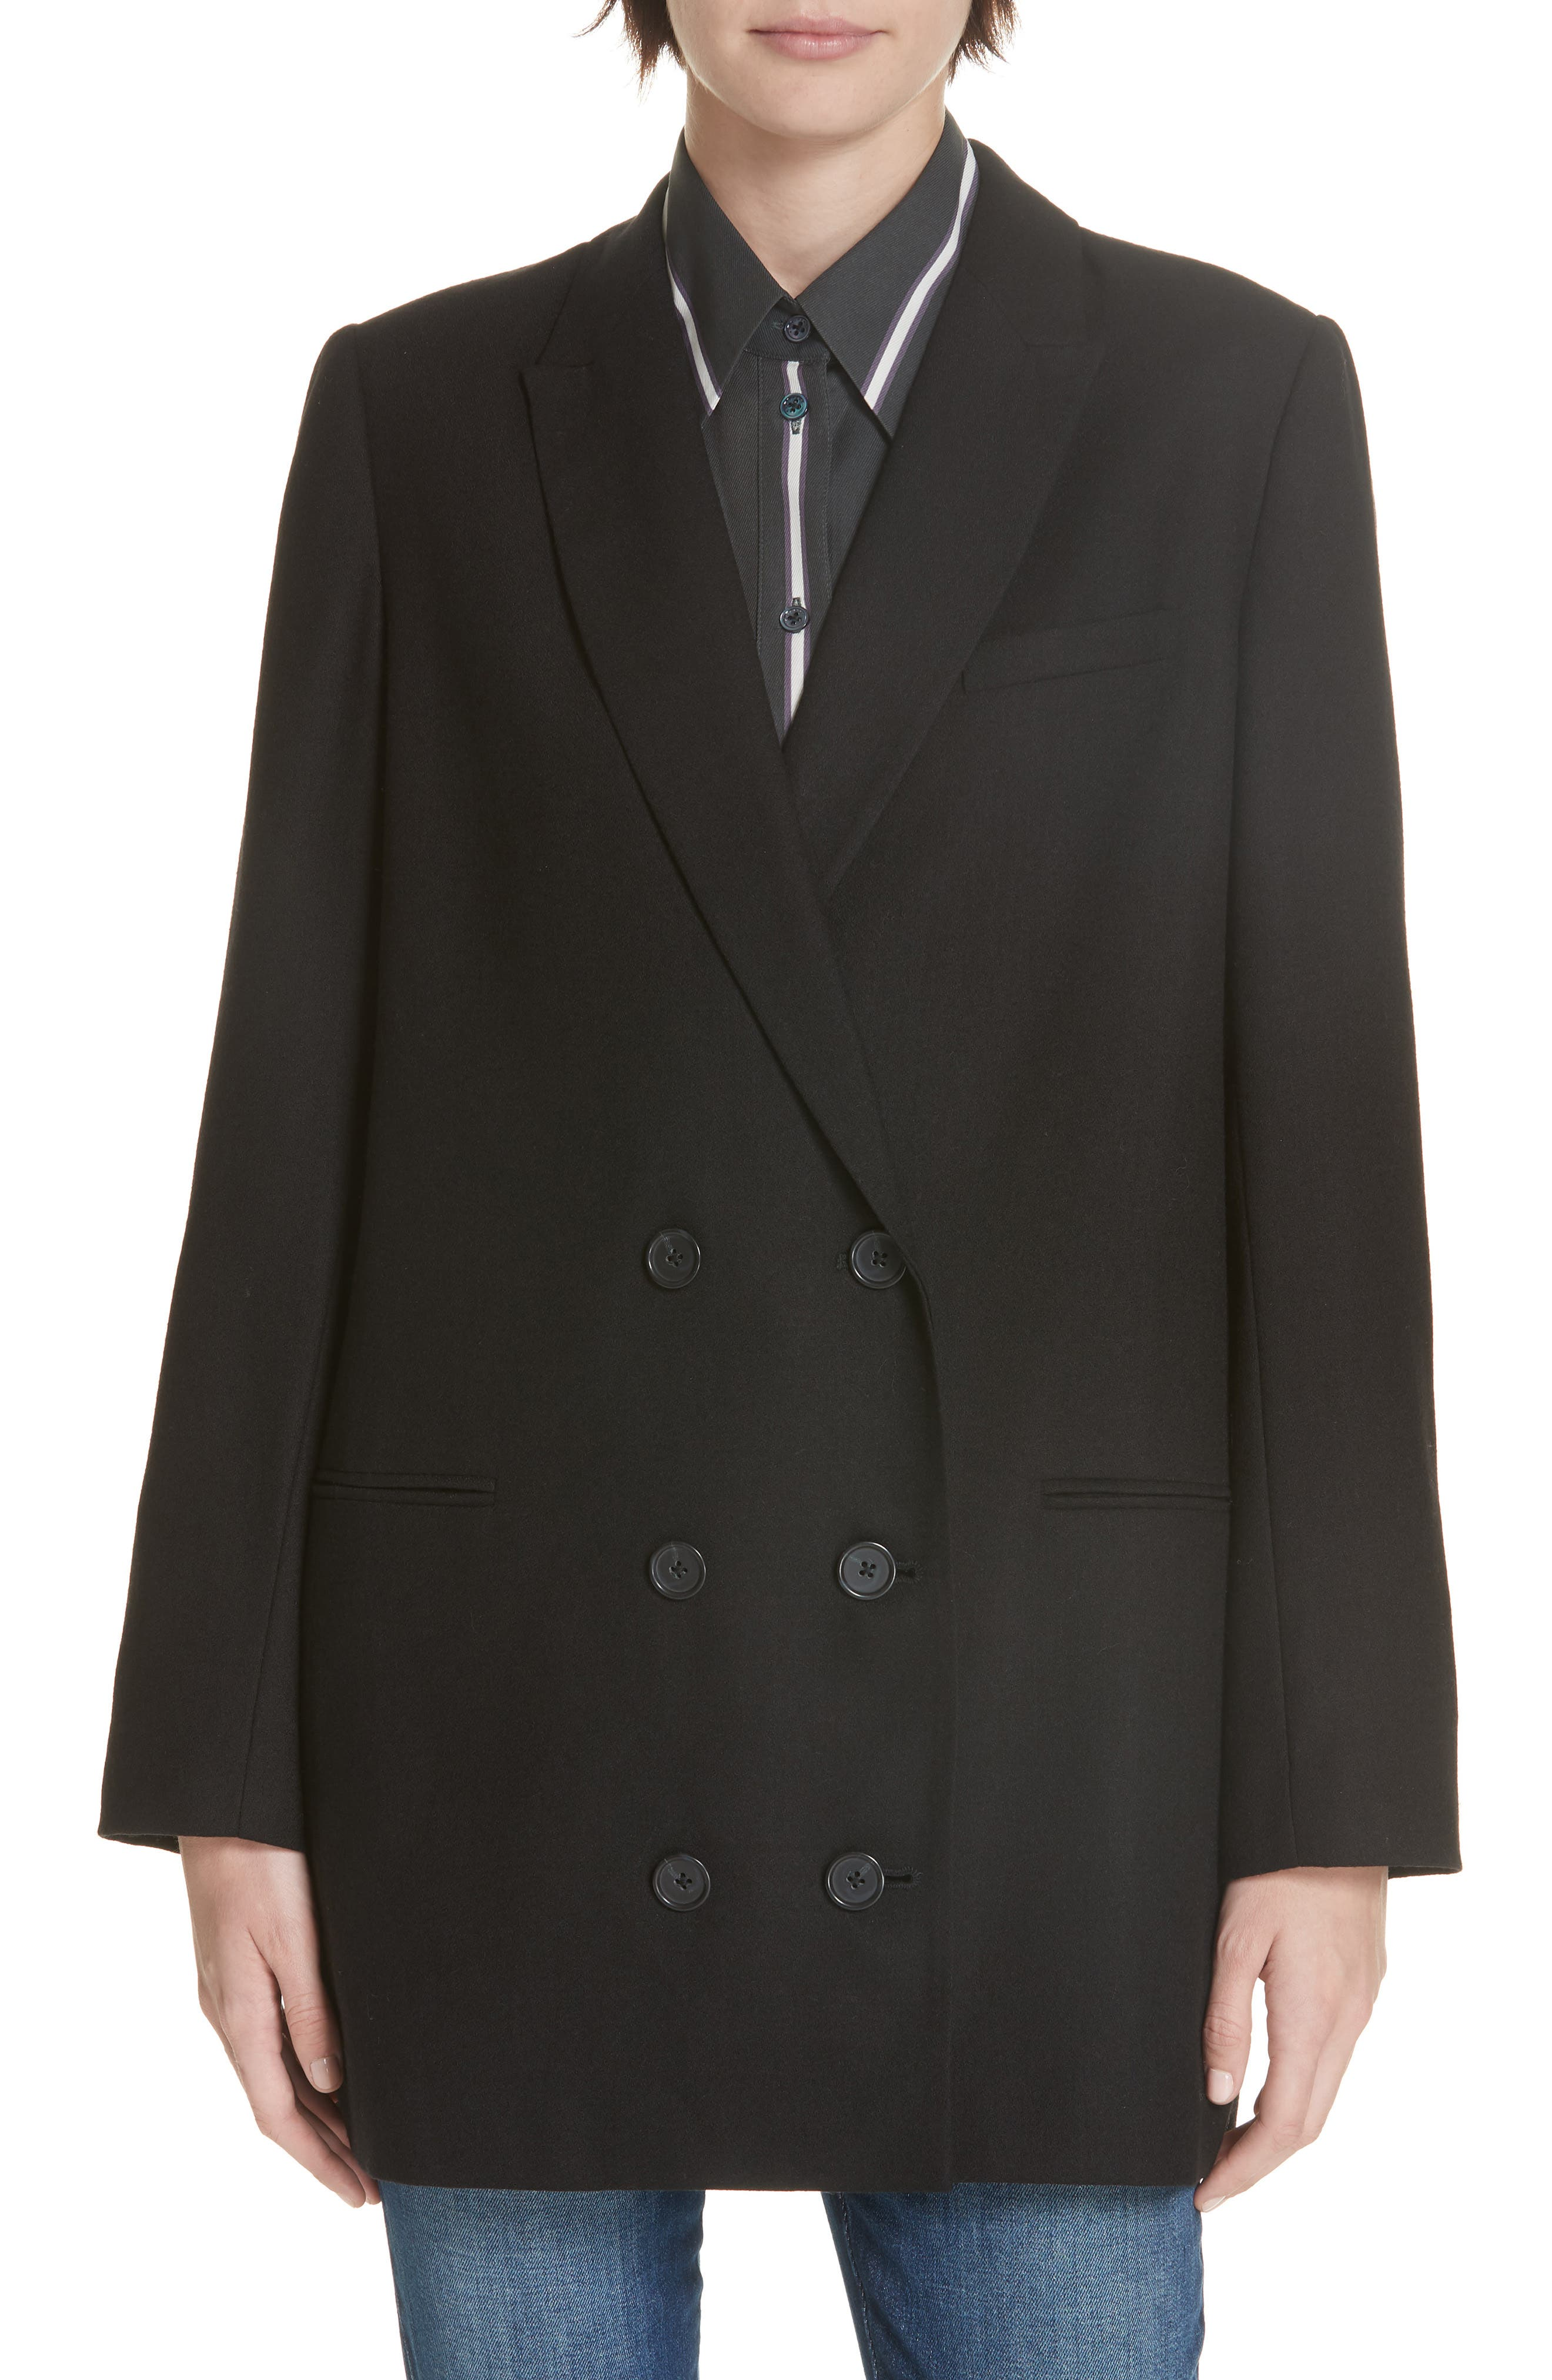 Norden Double Breasted Wool Jacket,                             Main thumbnail 1, color,                             001